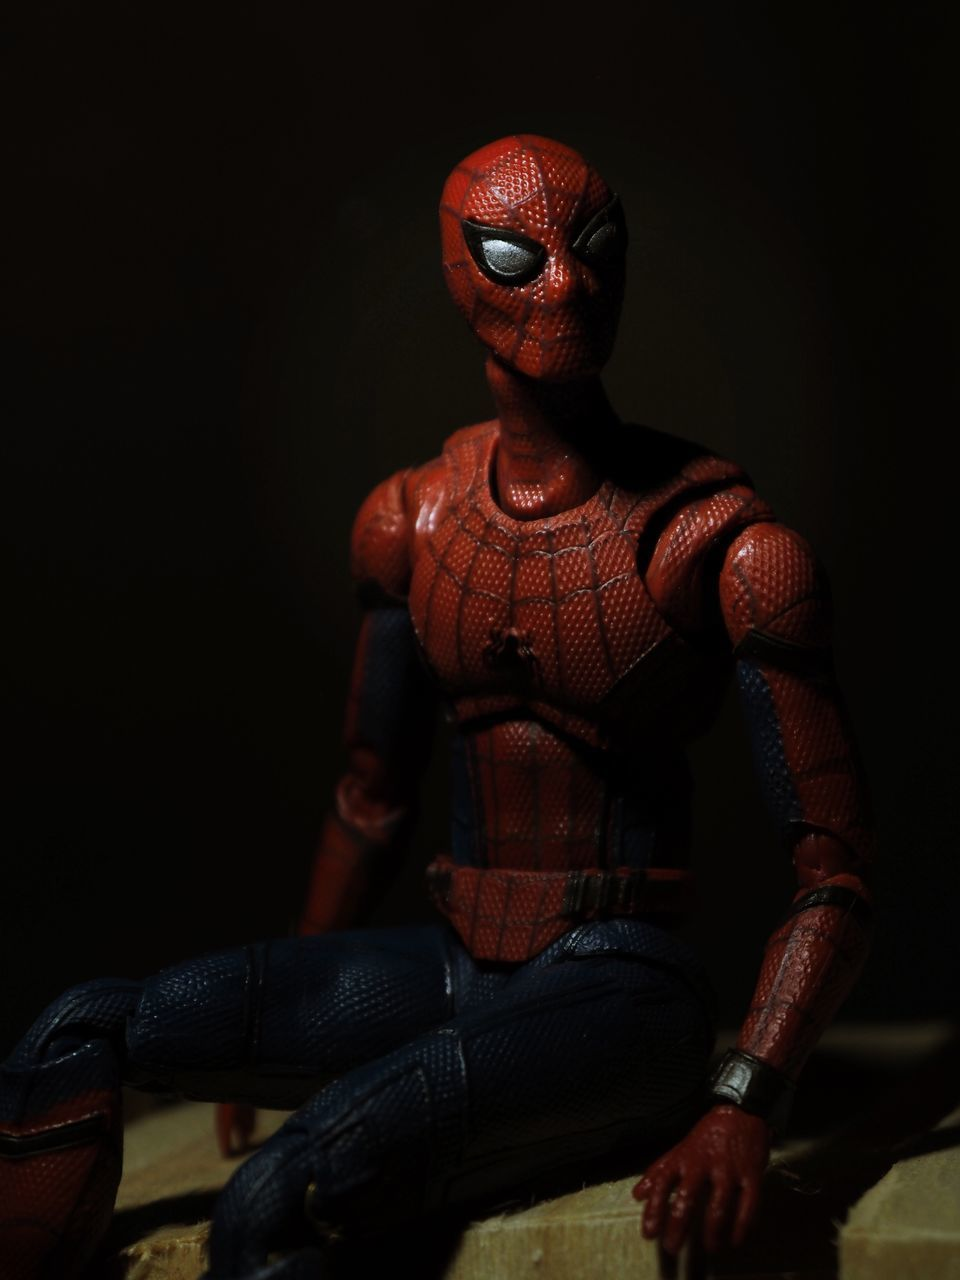 MIDSECTION OF MAN SITTING AGAINST RED TOY